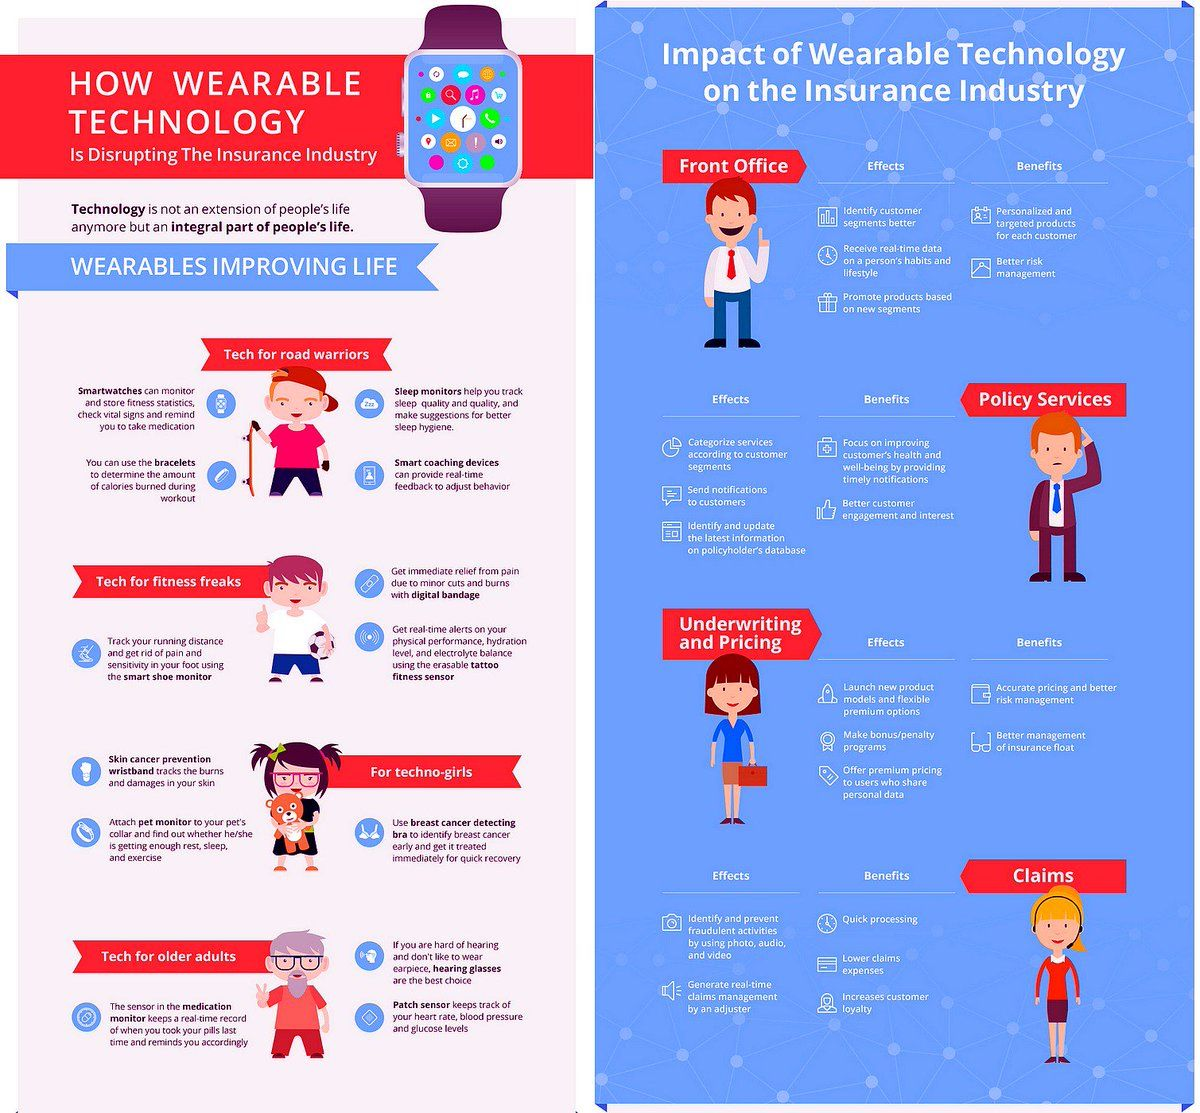 How Wearable Technology Is Disrupting The Insurance Industry Infographic Insurtech Wearables Fintech Wearable Technology Health Tech Insurance Industry